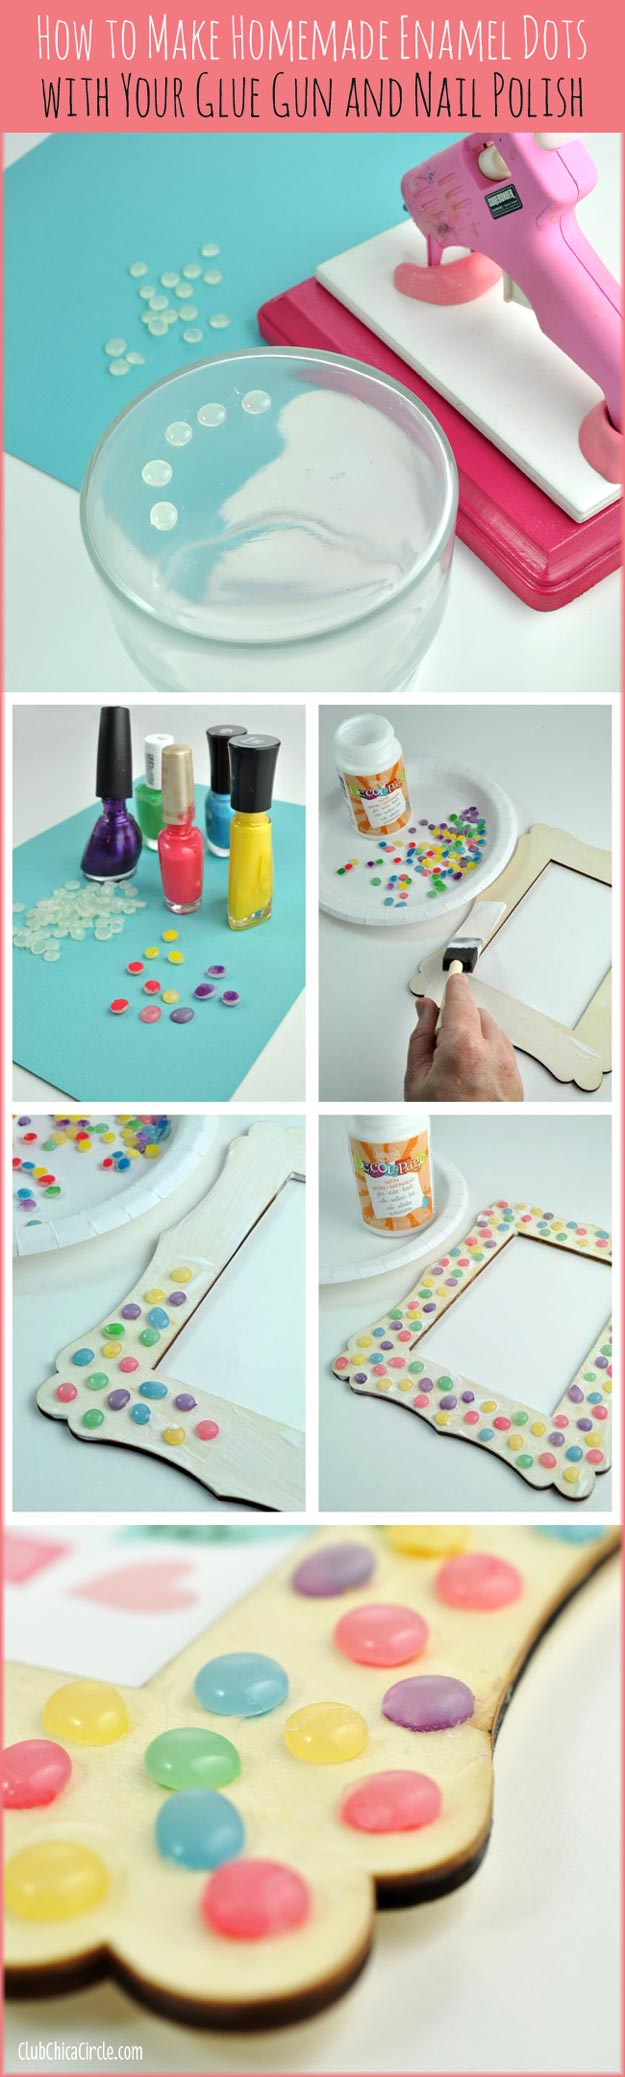 DIY Crafts Using Nail Polish - Fun, Cool, Easy and Cheap Craft Ideas for Girls, Teens, Tweens and Adults | Homemade Enamel Dots With Glue Gun